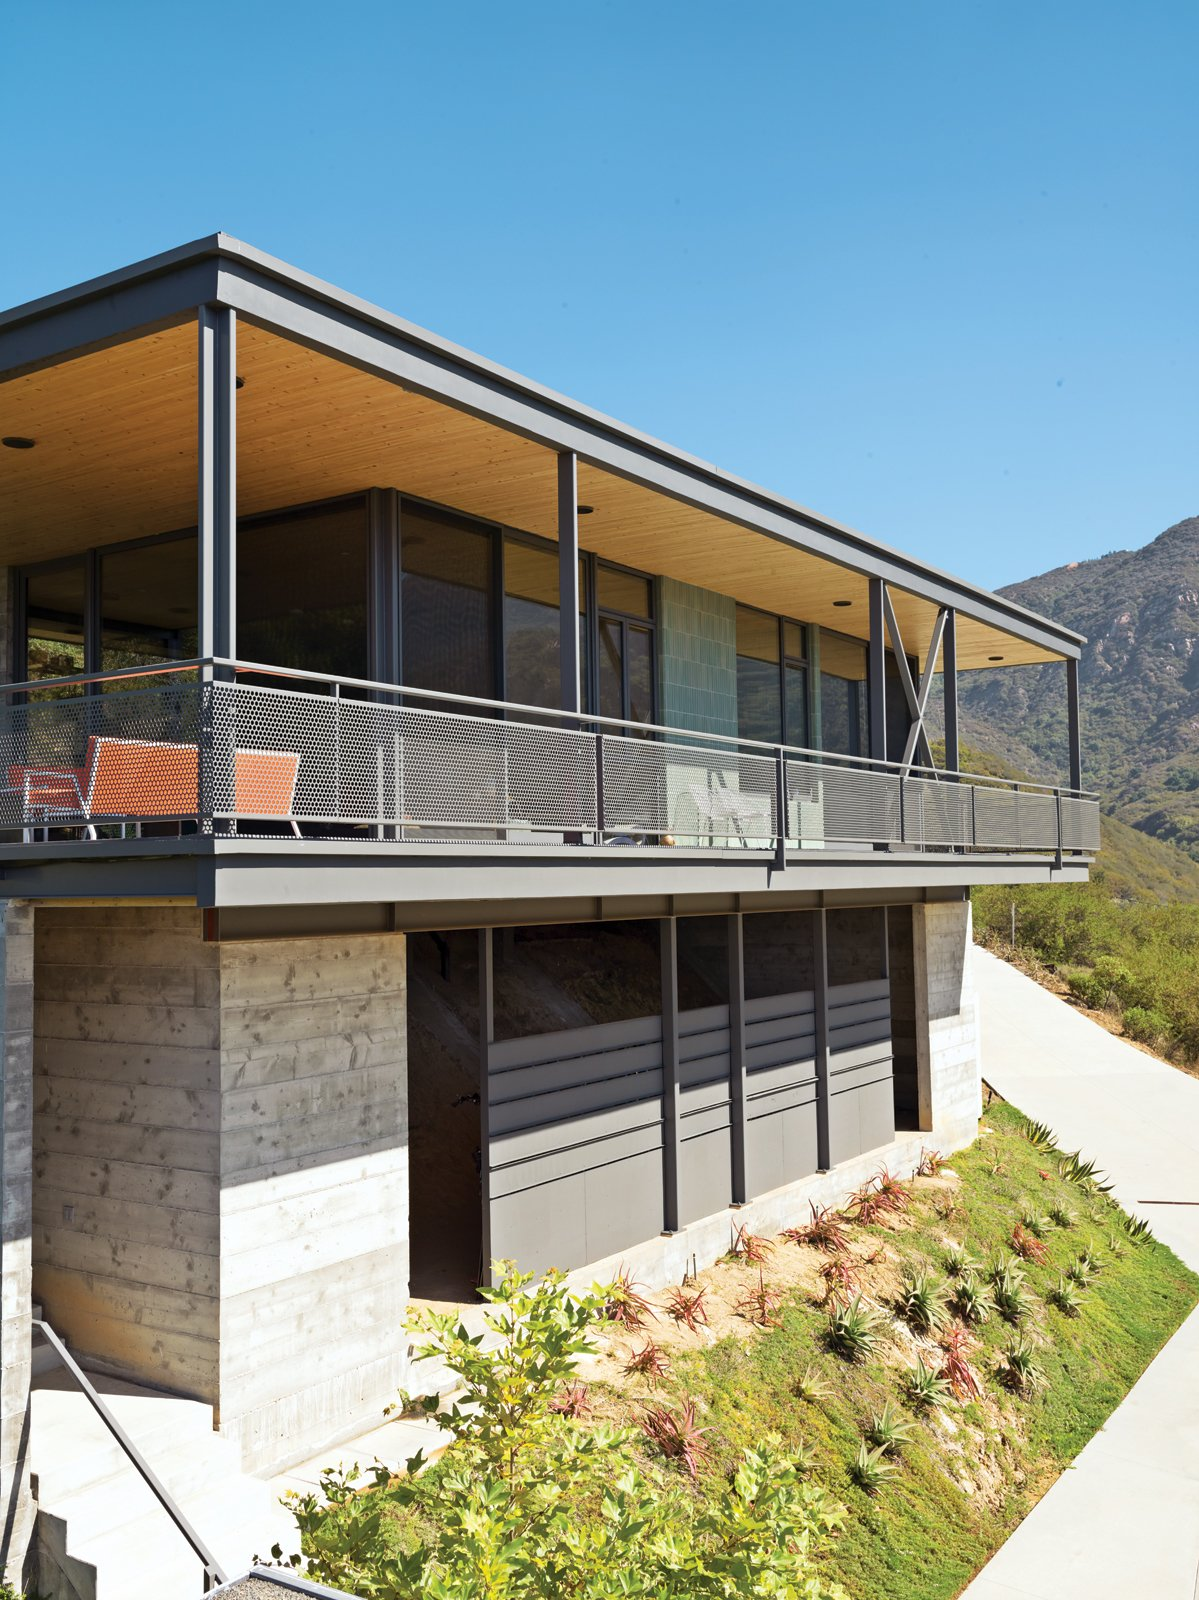 Fir slats on the wall and ceiling run through to the outdoors, visually expanding the space. This High-Flying Home Tackles a Sharp Slope - Photo 9 of 9